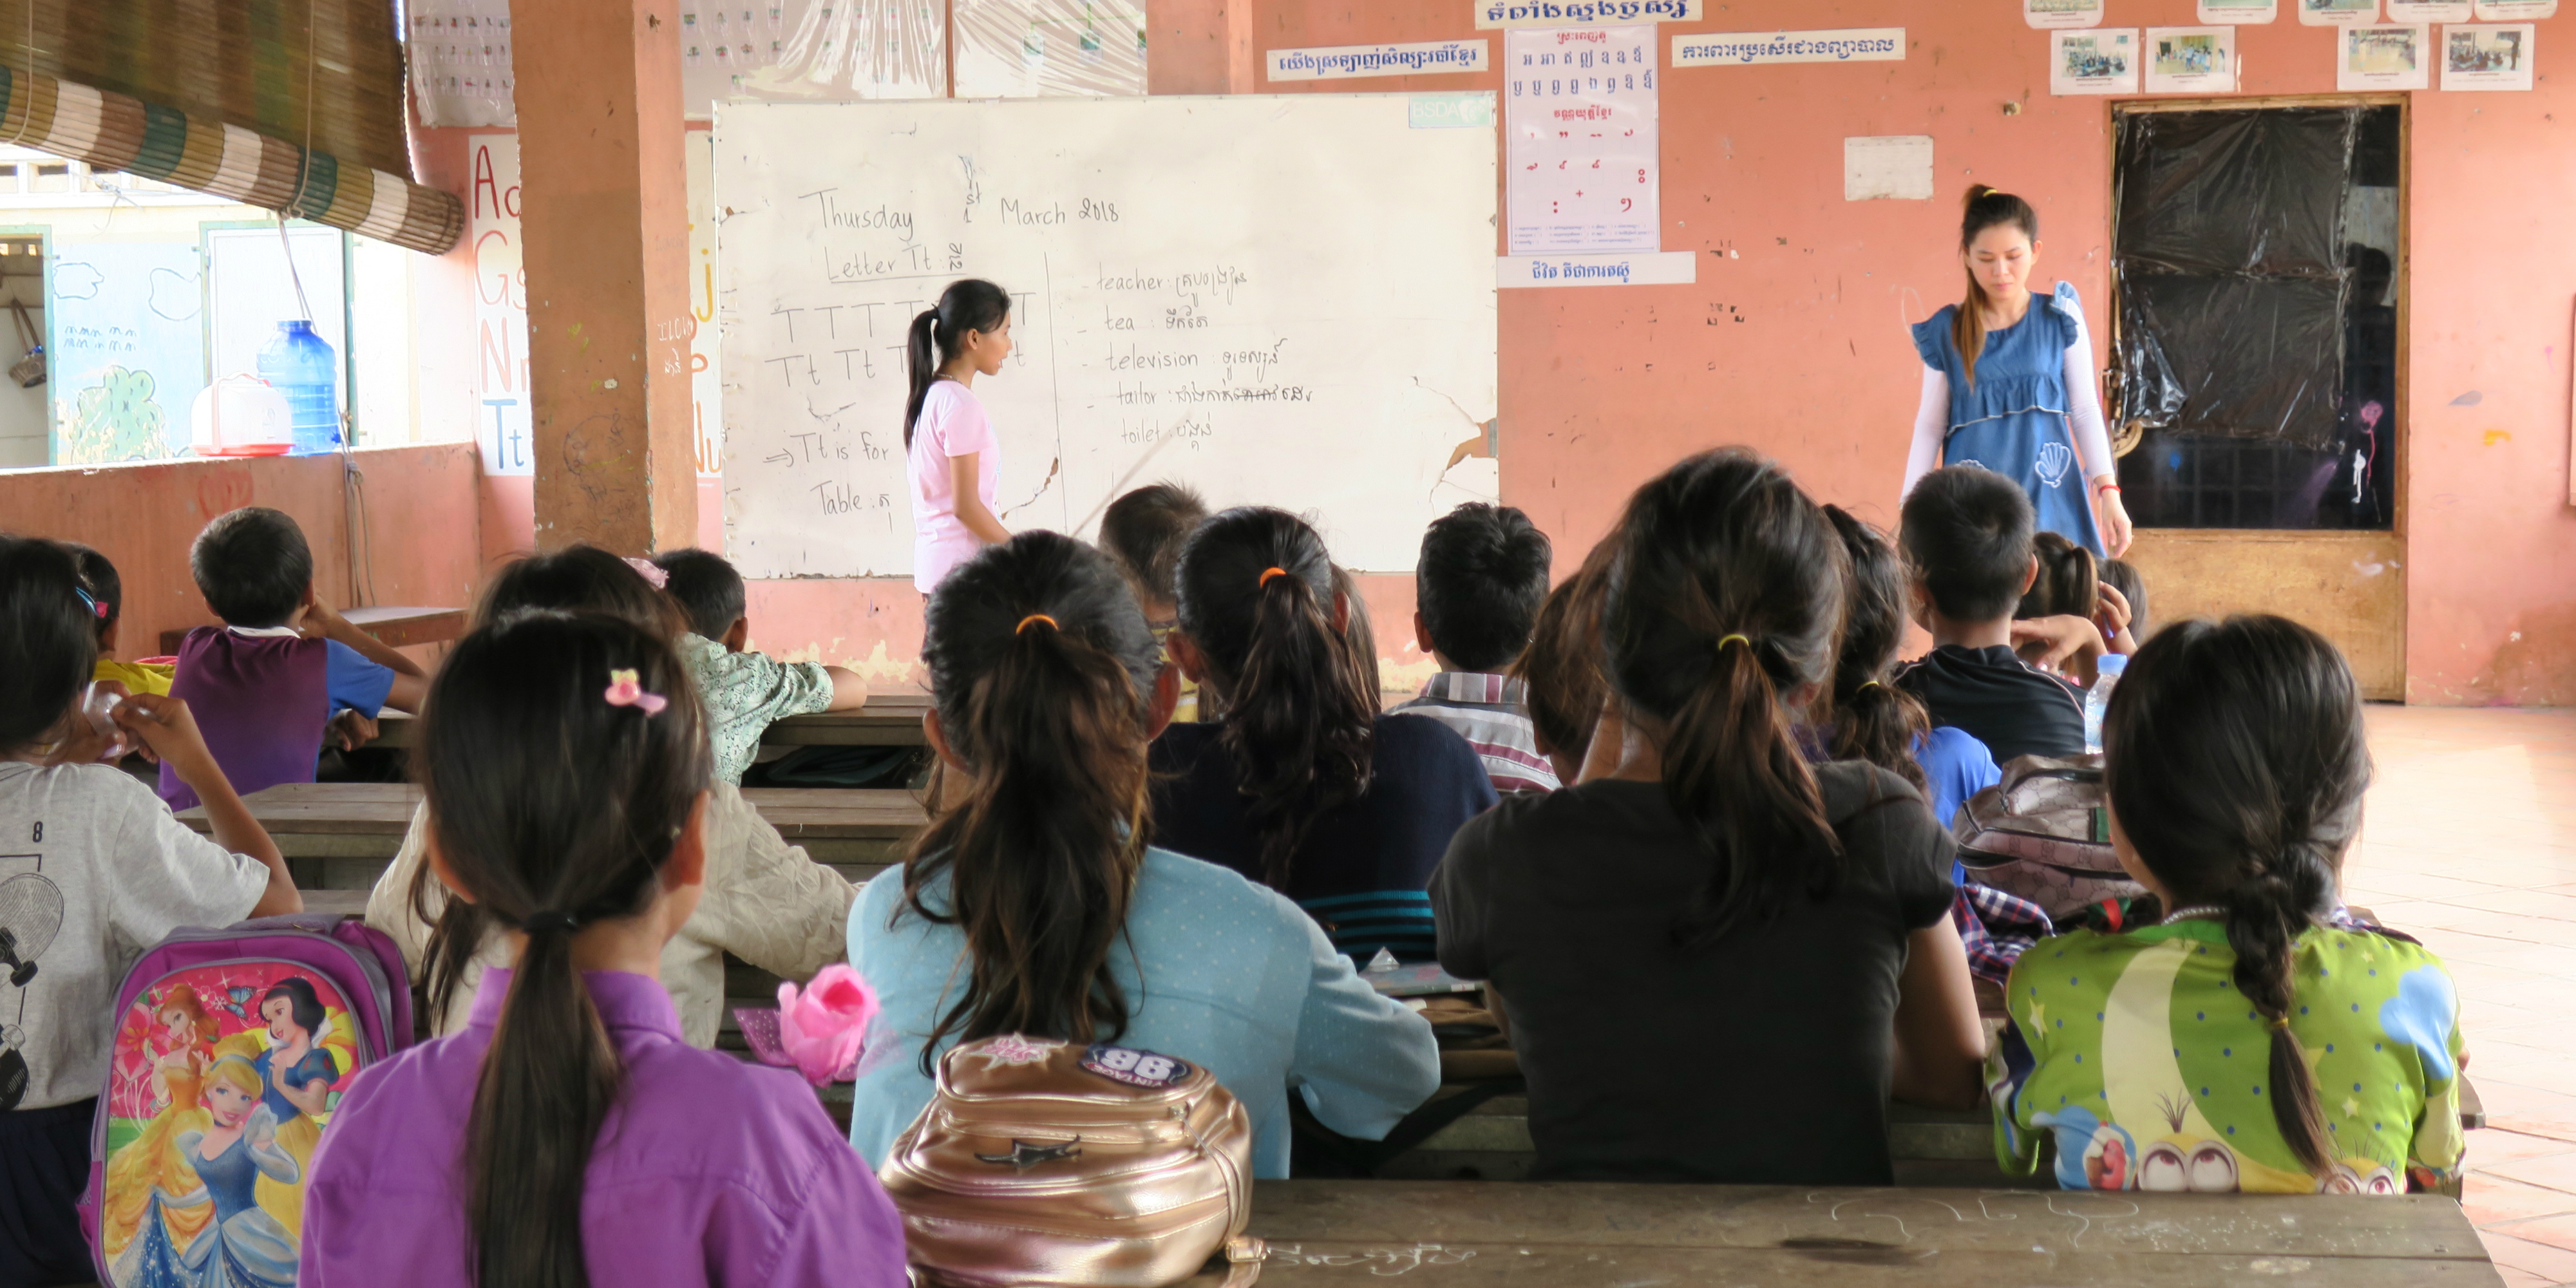 Teens volunteering in Laos will be working with young learners at the Luang Prabang library.